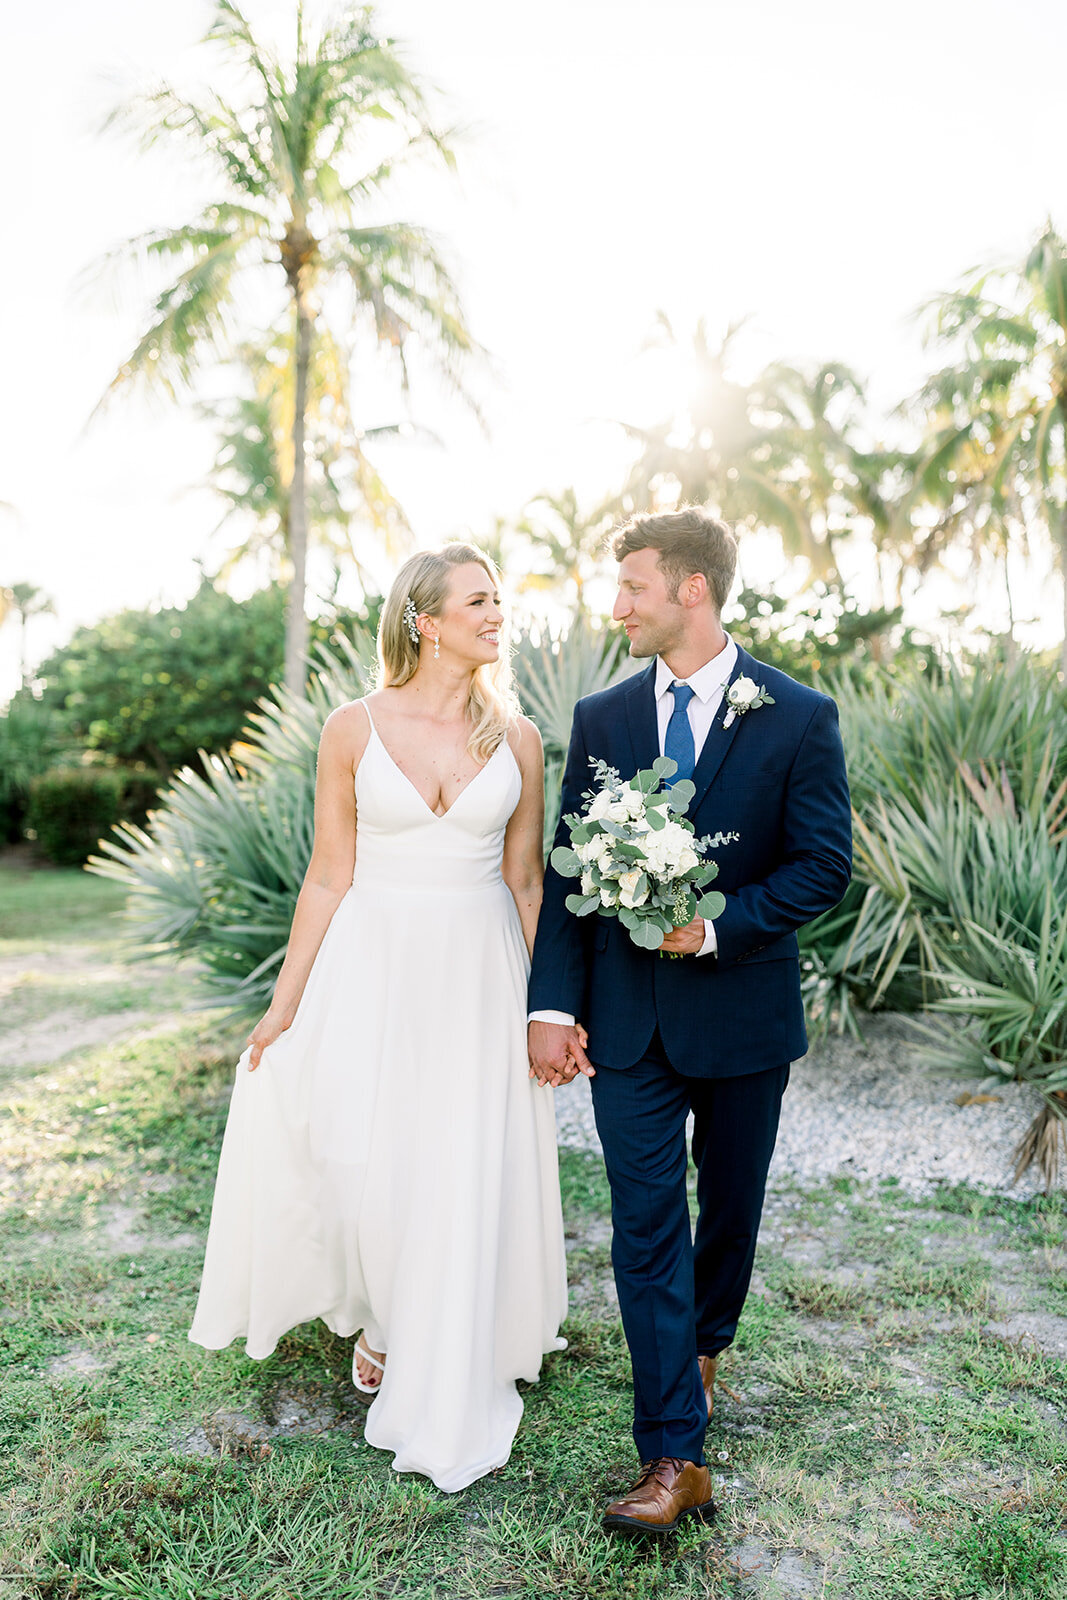 alex-mike-bowditch-beach-fort-myers-wedding-photos-1140